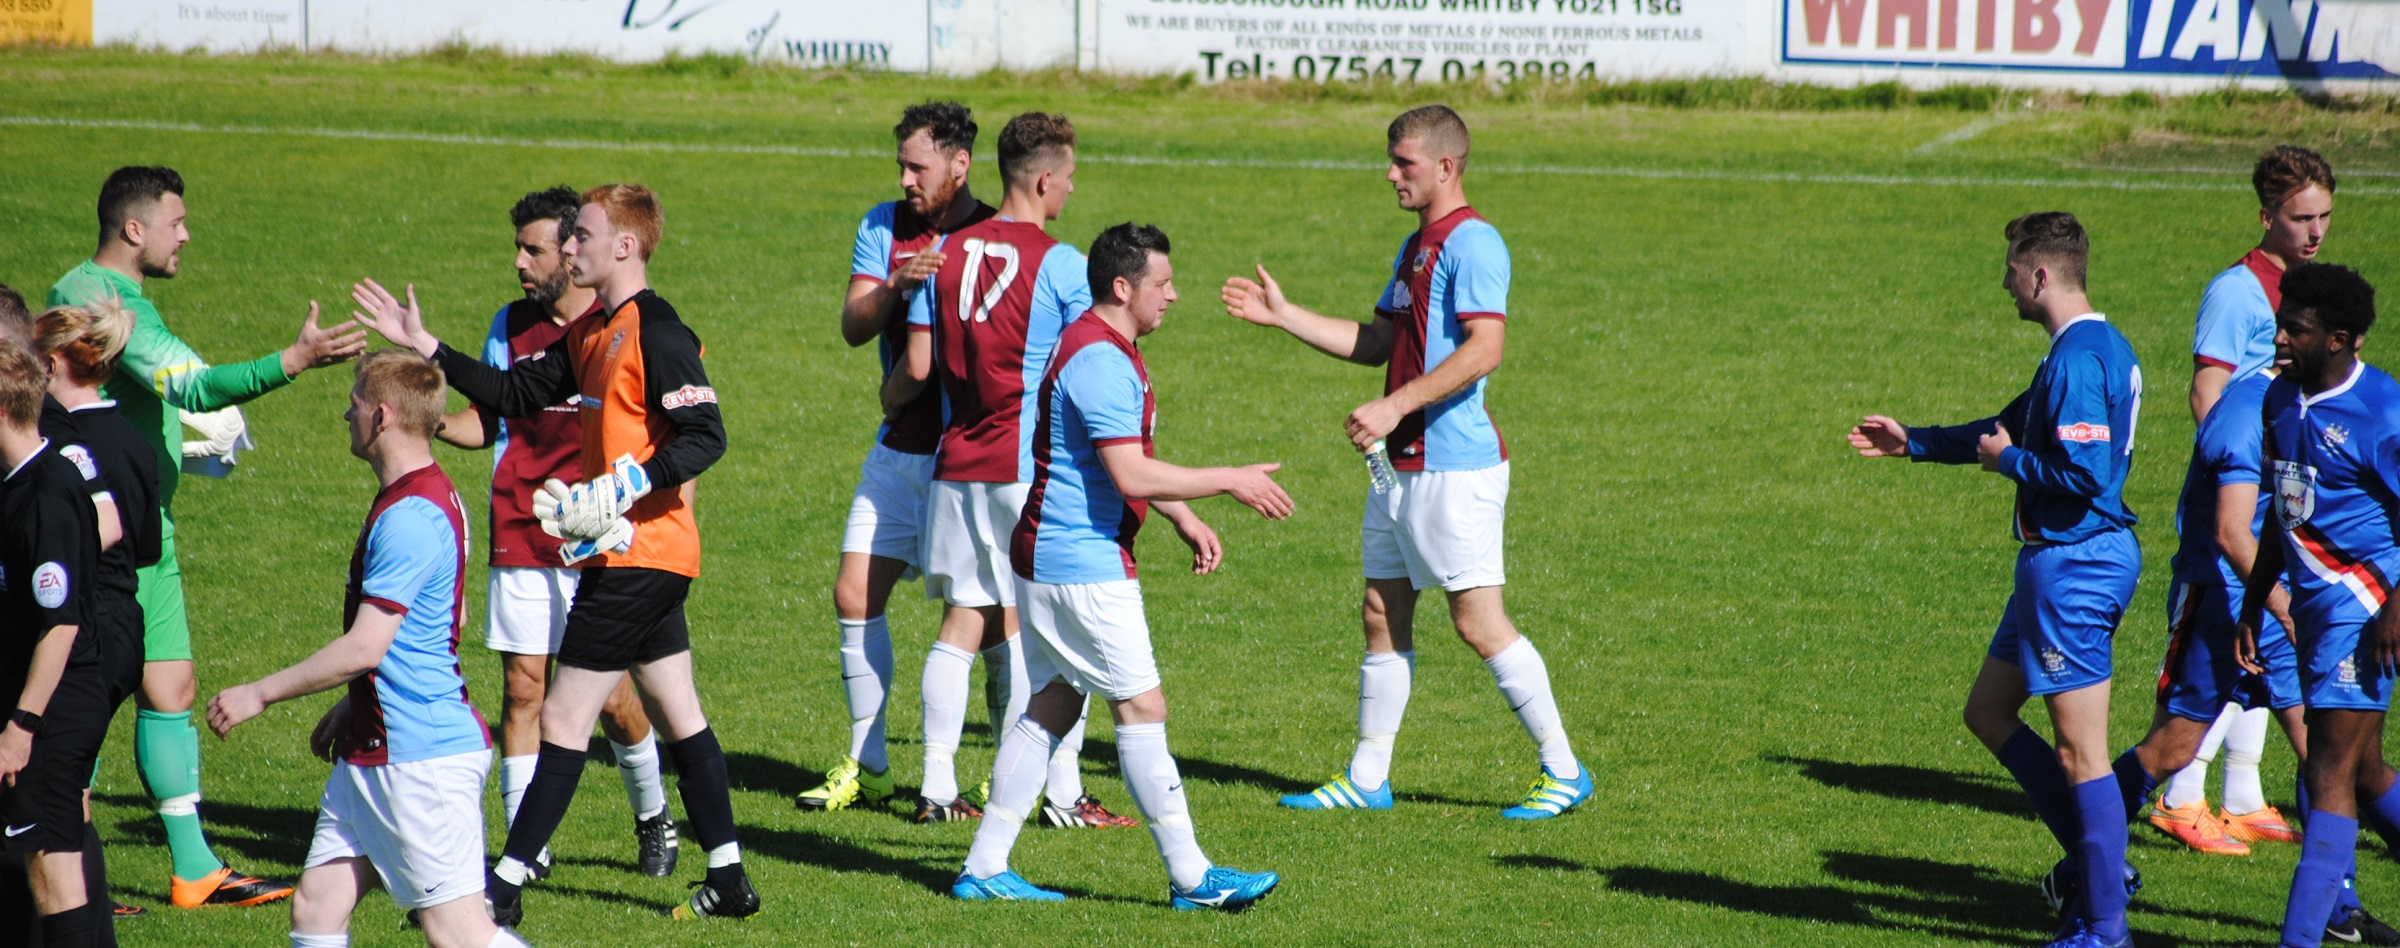 Whitby Town 0-1 South Shields